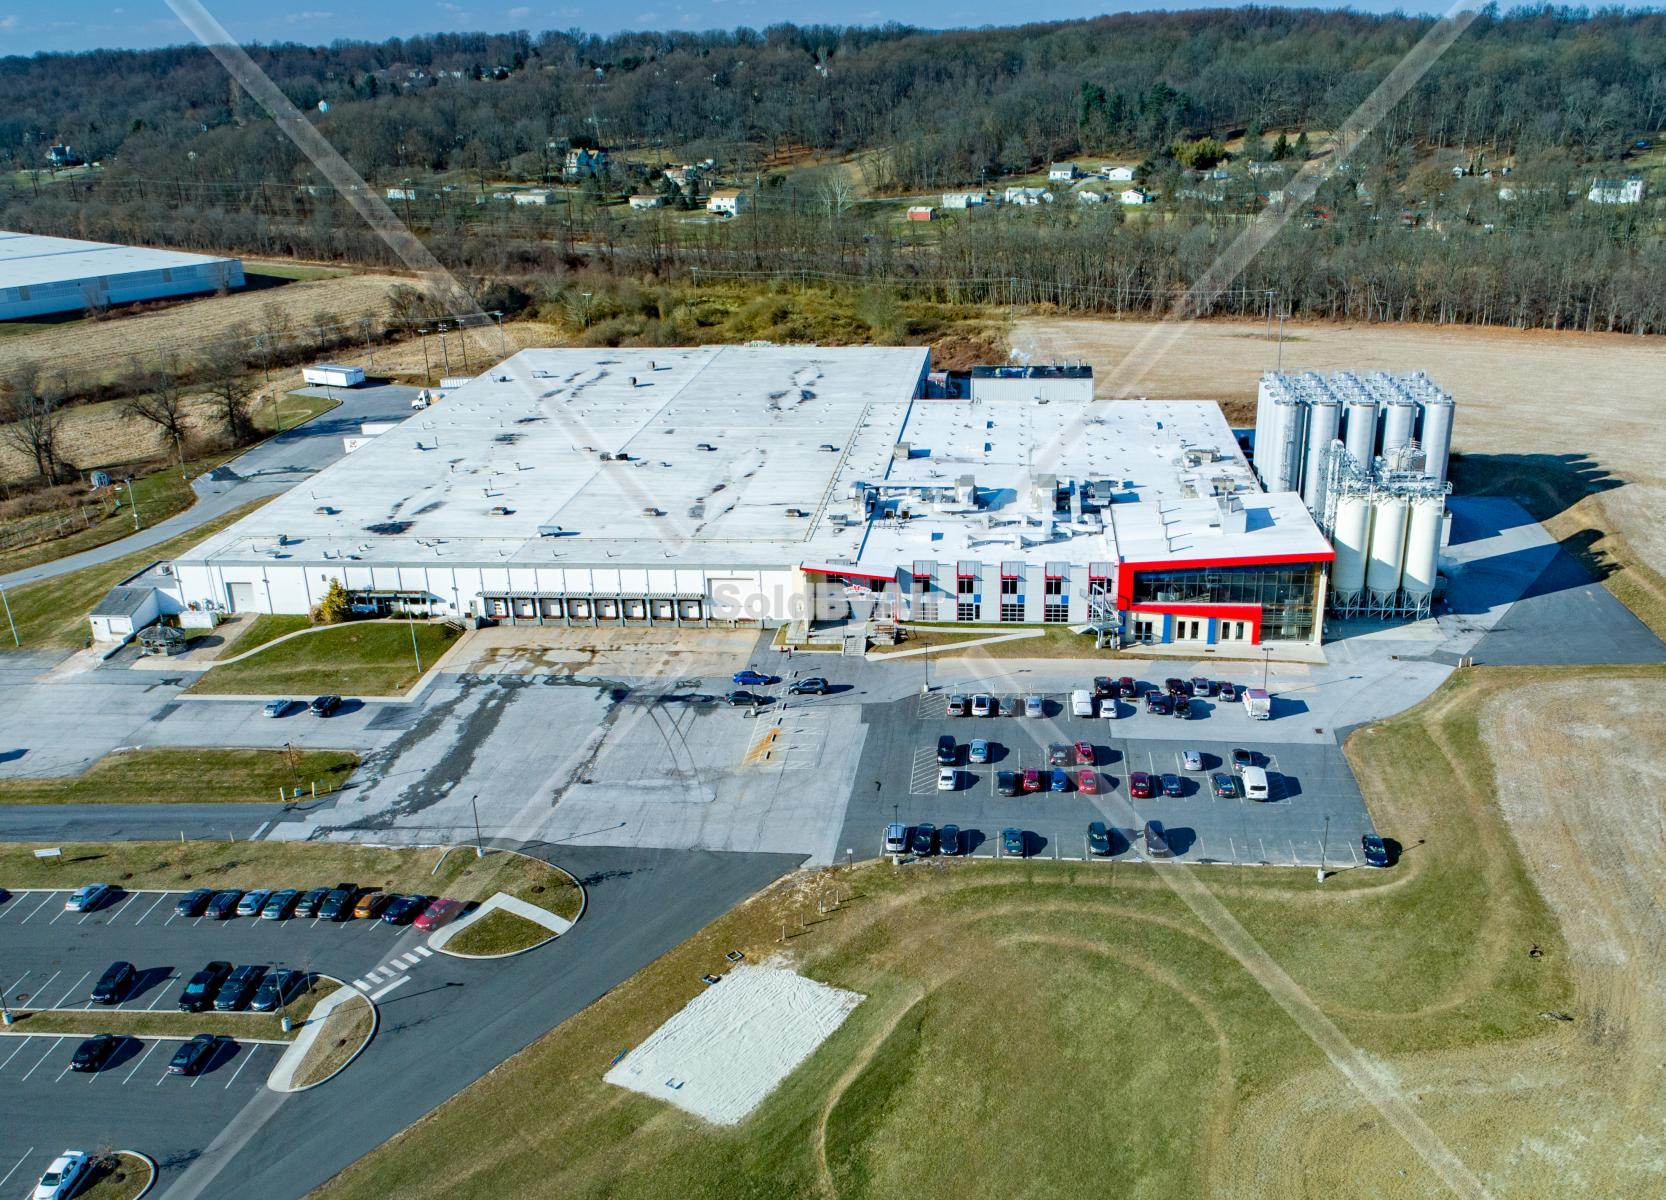 Drone Photo of Victory Brewing Company in Parkesburg Pennsylvania